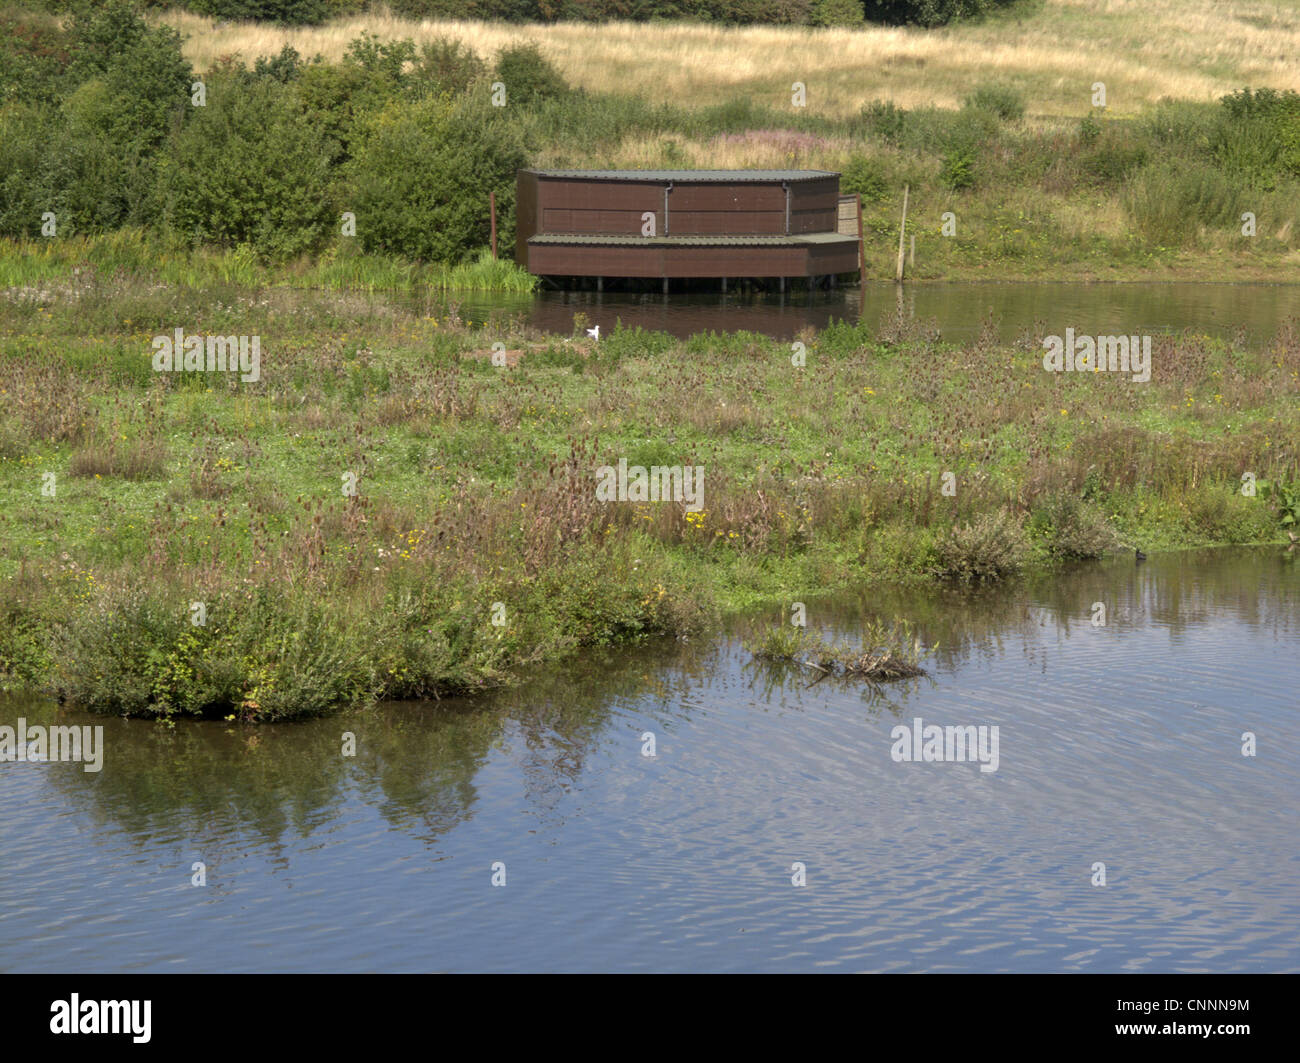 View of freshwater lake habitat and hide, Sandwell Valley RSPB Reserve, West Midlands, England, september - Stock Image